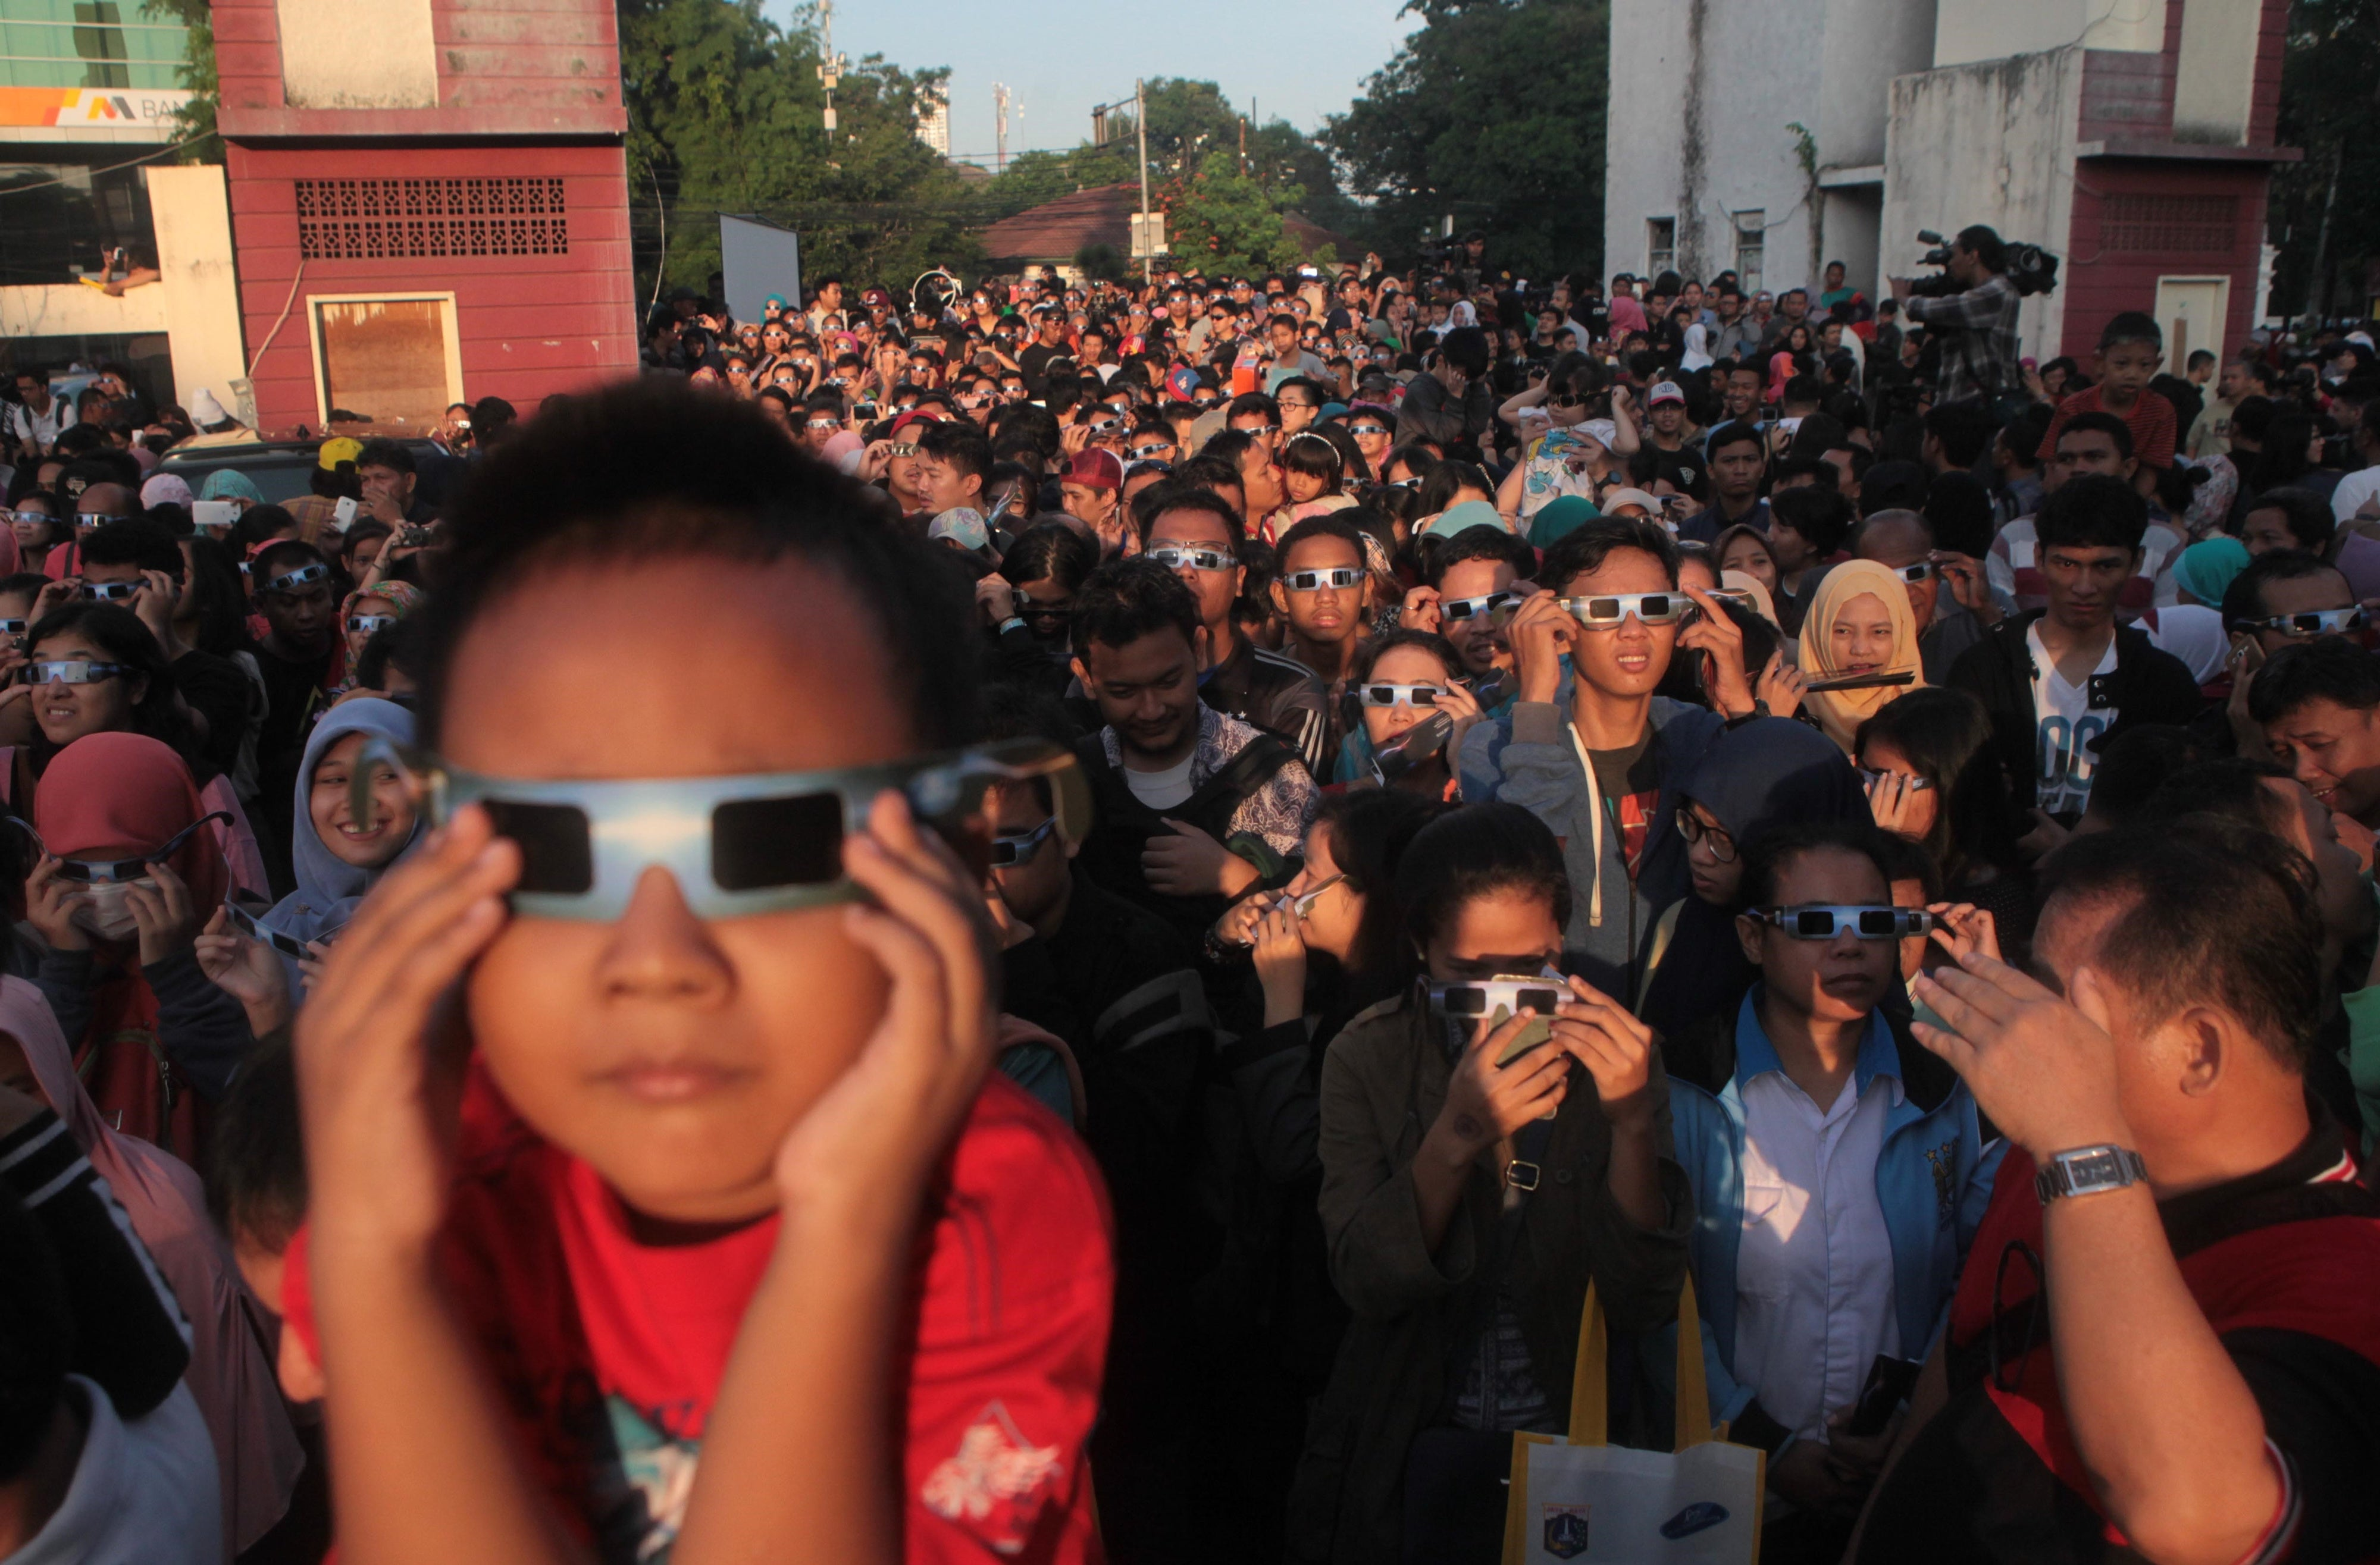 Still a Glaring Problem How a Solar Eclipse Can Fry Your Eyes